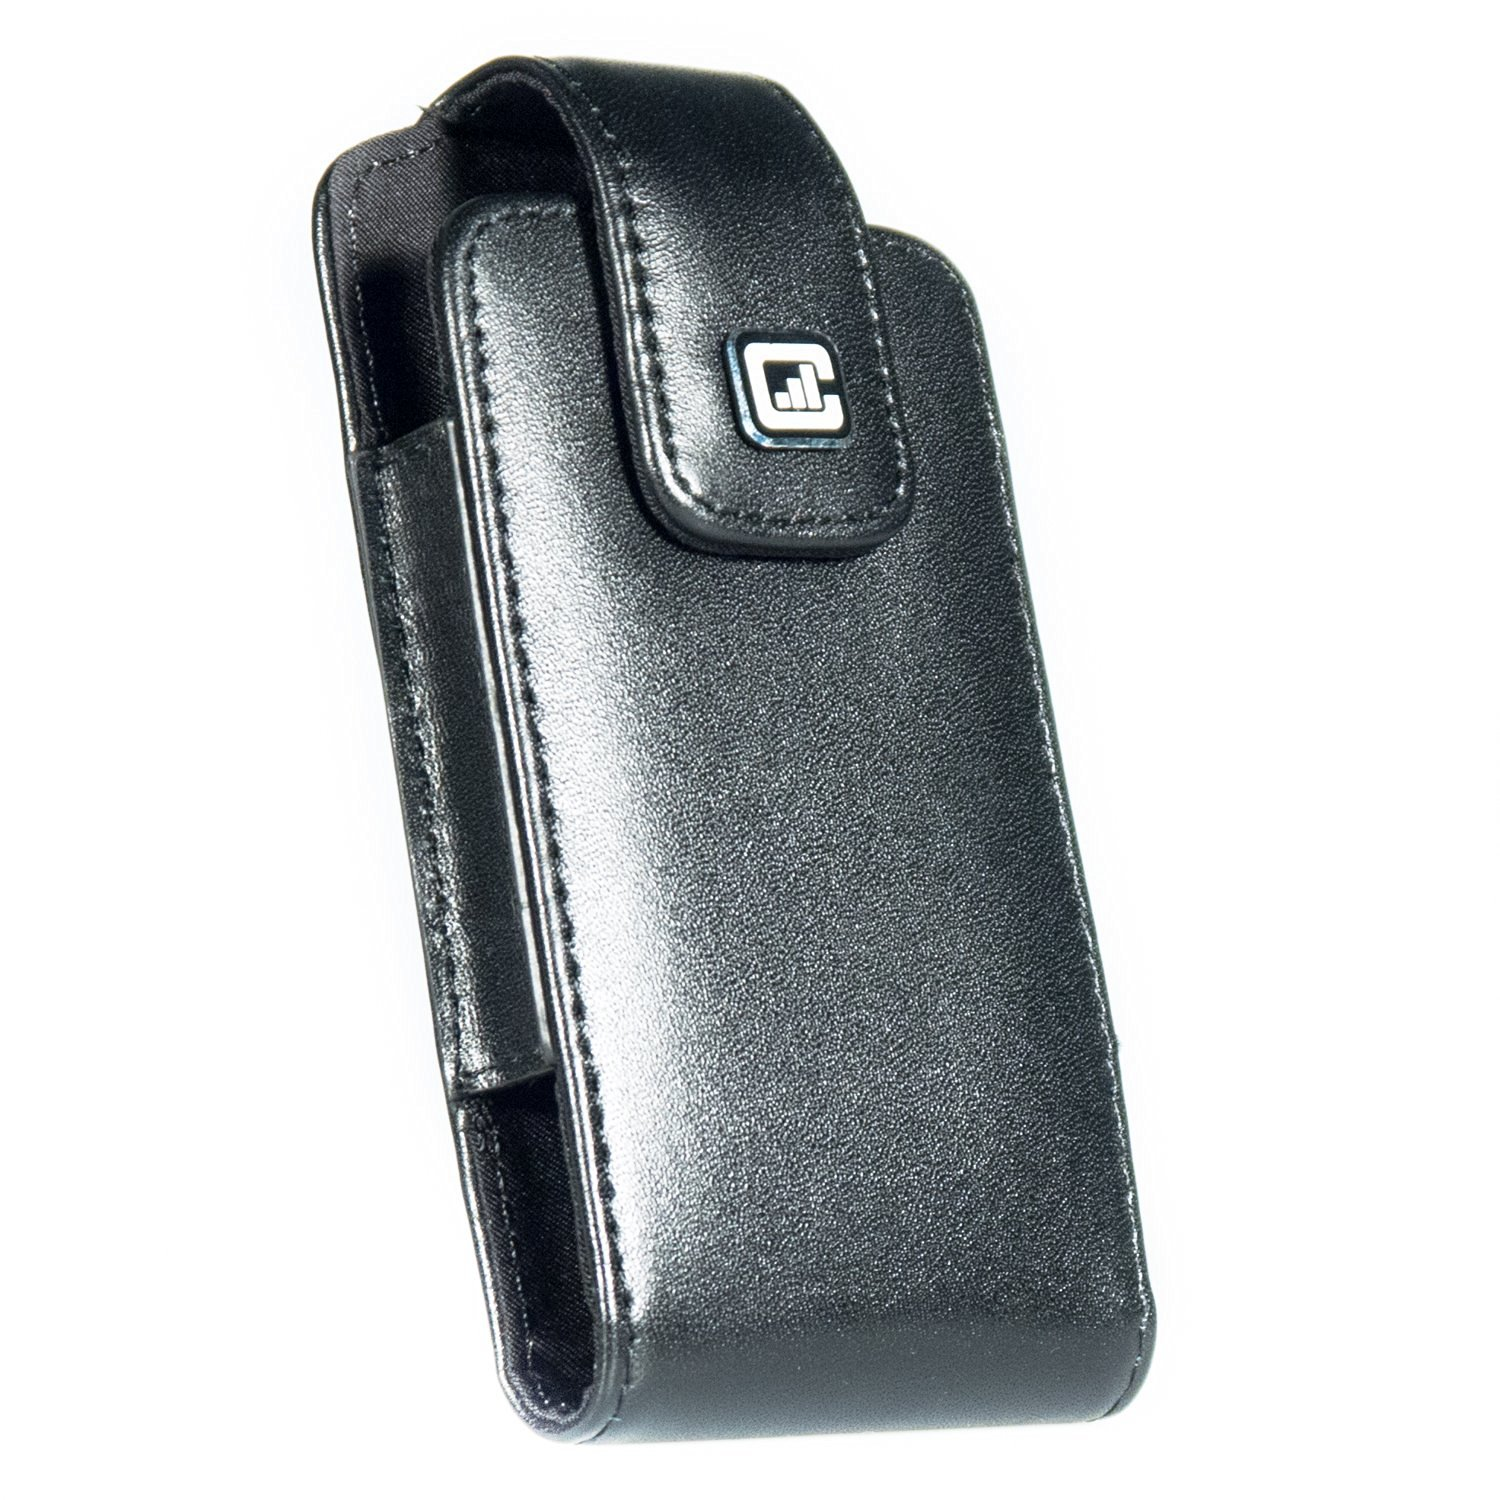 CASE123® MPS SL Special Edition Large Oversized Geniune Leather Swivel Belt Clip Holster for Apple iPhone 5/5s/5c -- For use with no cases or covers